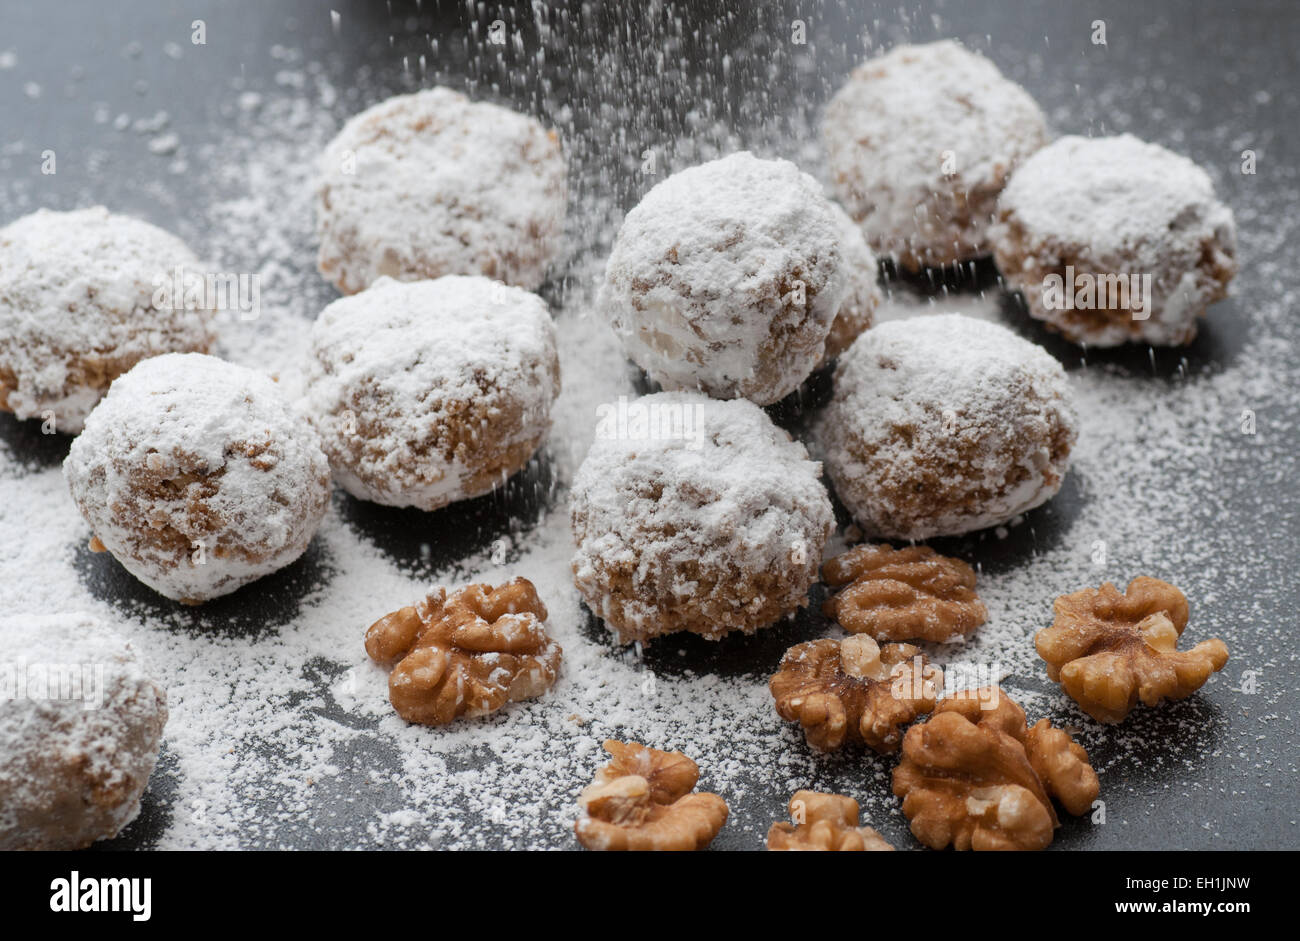 Homemade walnut snowball cookies with powdered sugar. - Stock Image